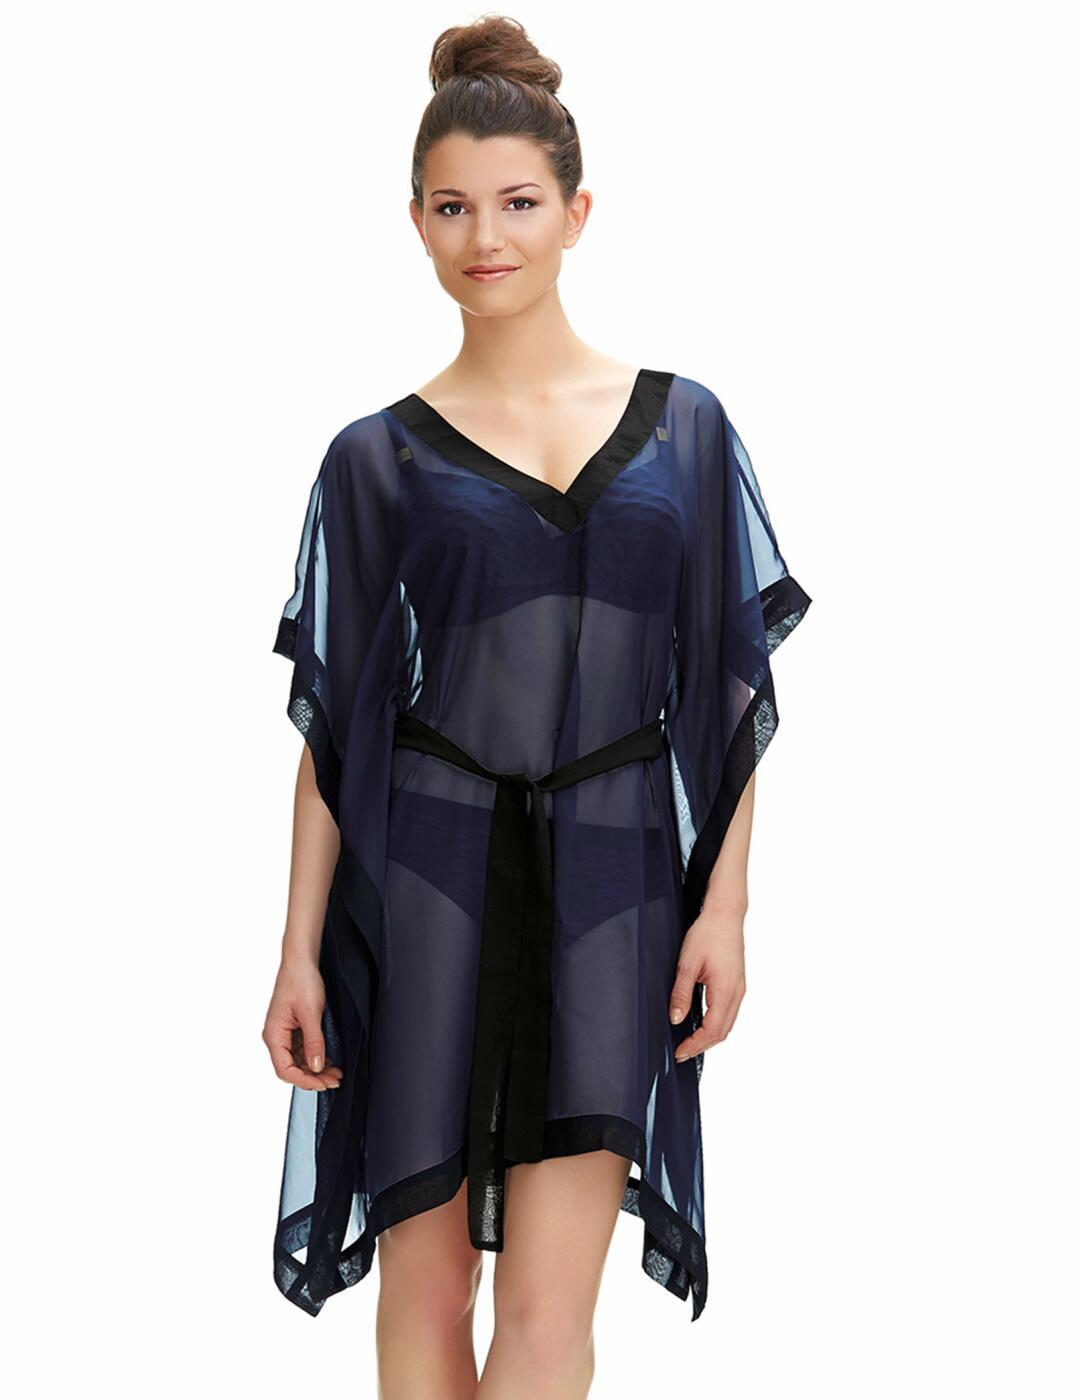 6298 Fantasie Sarasota Kaftan Beach Dress Nightshade - 6298 Kaftan